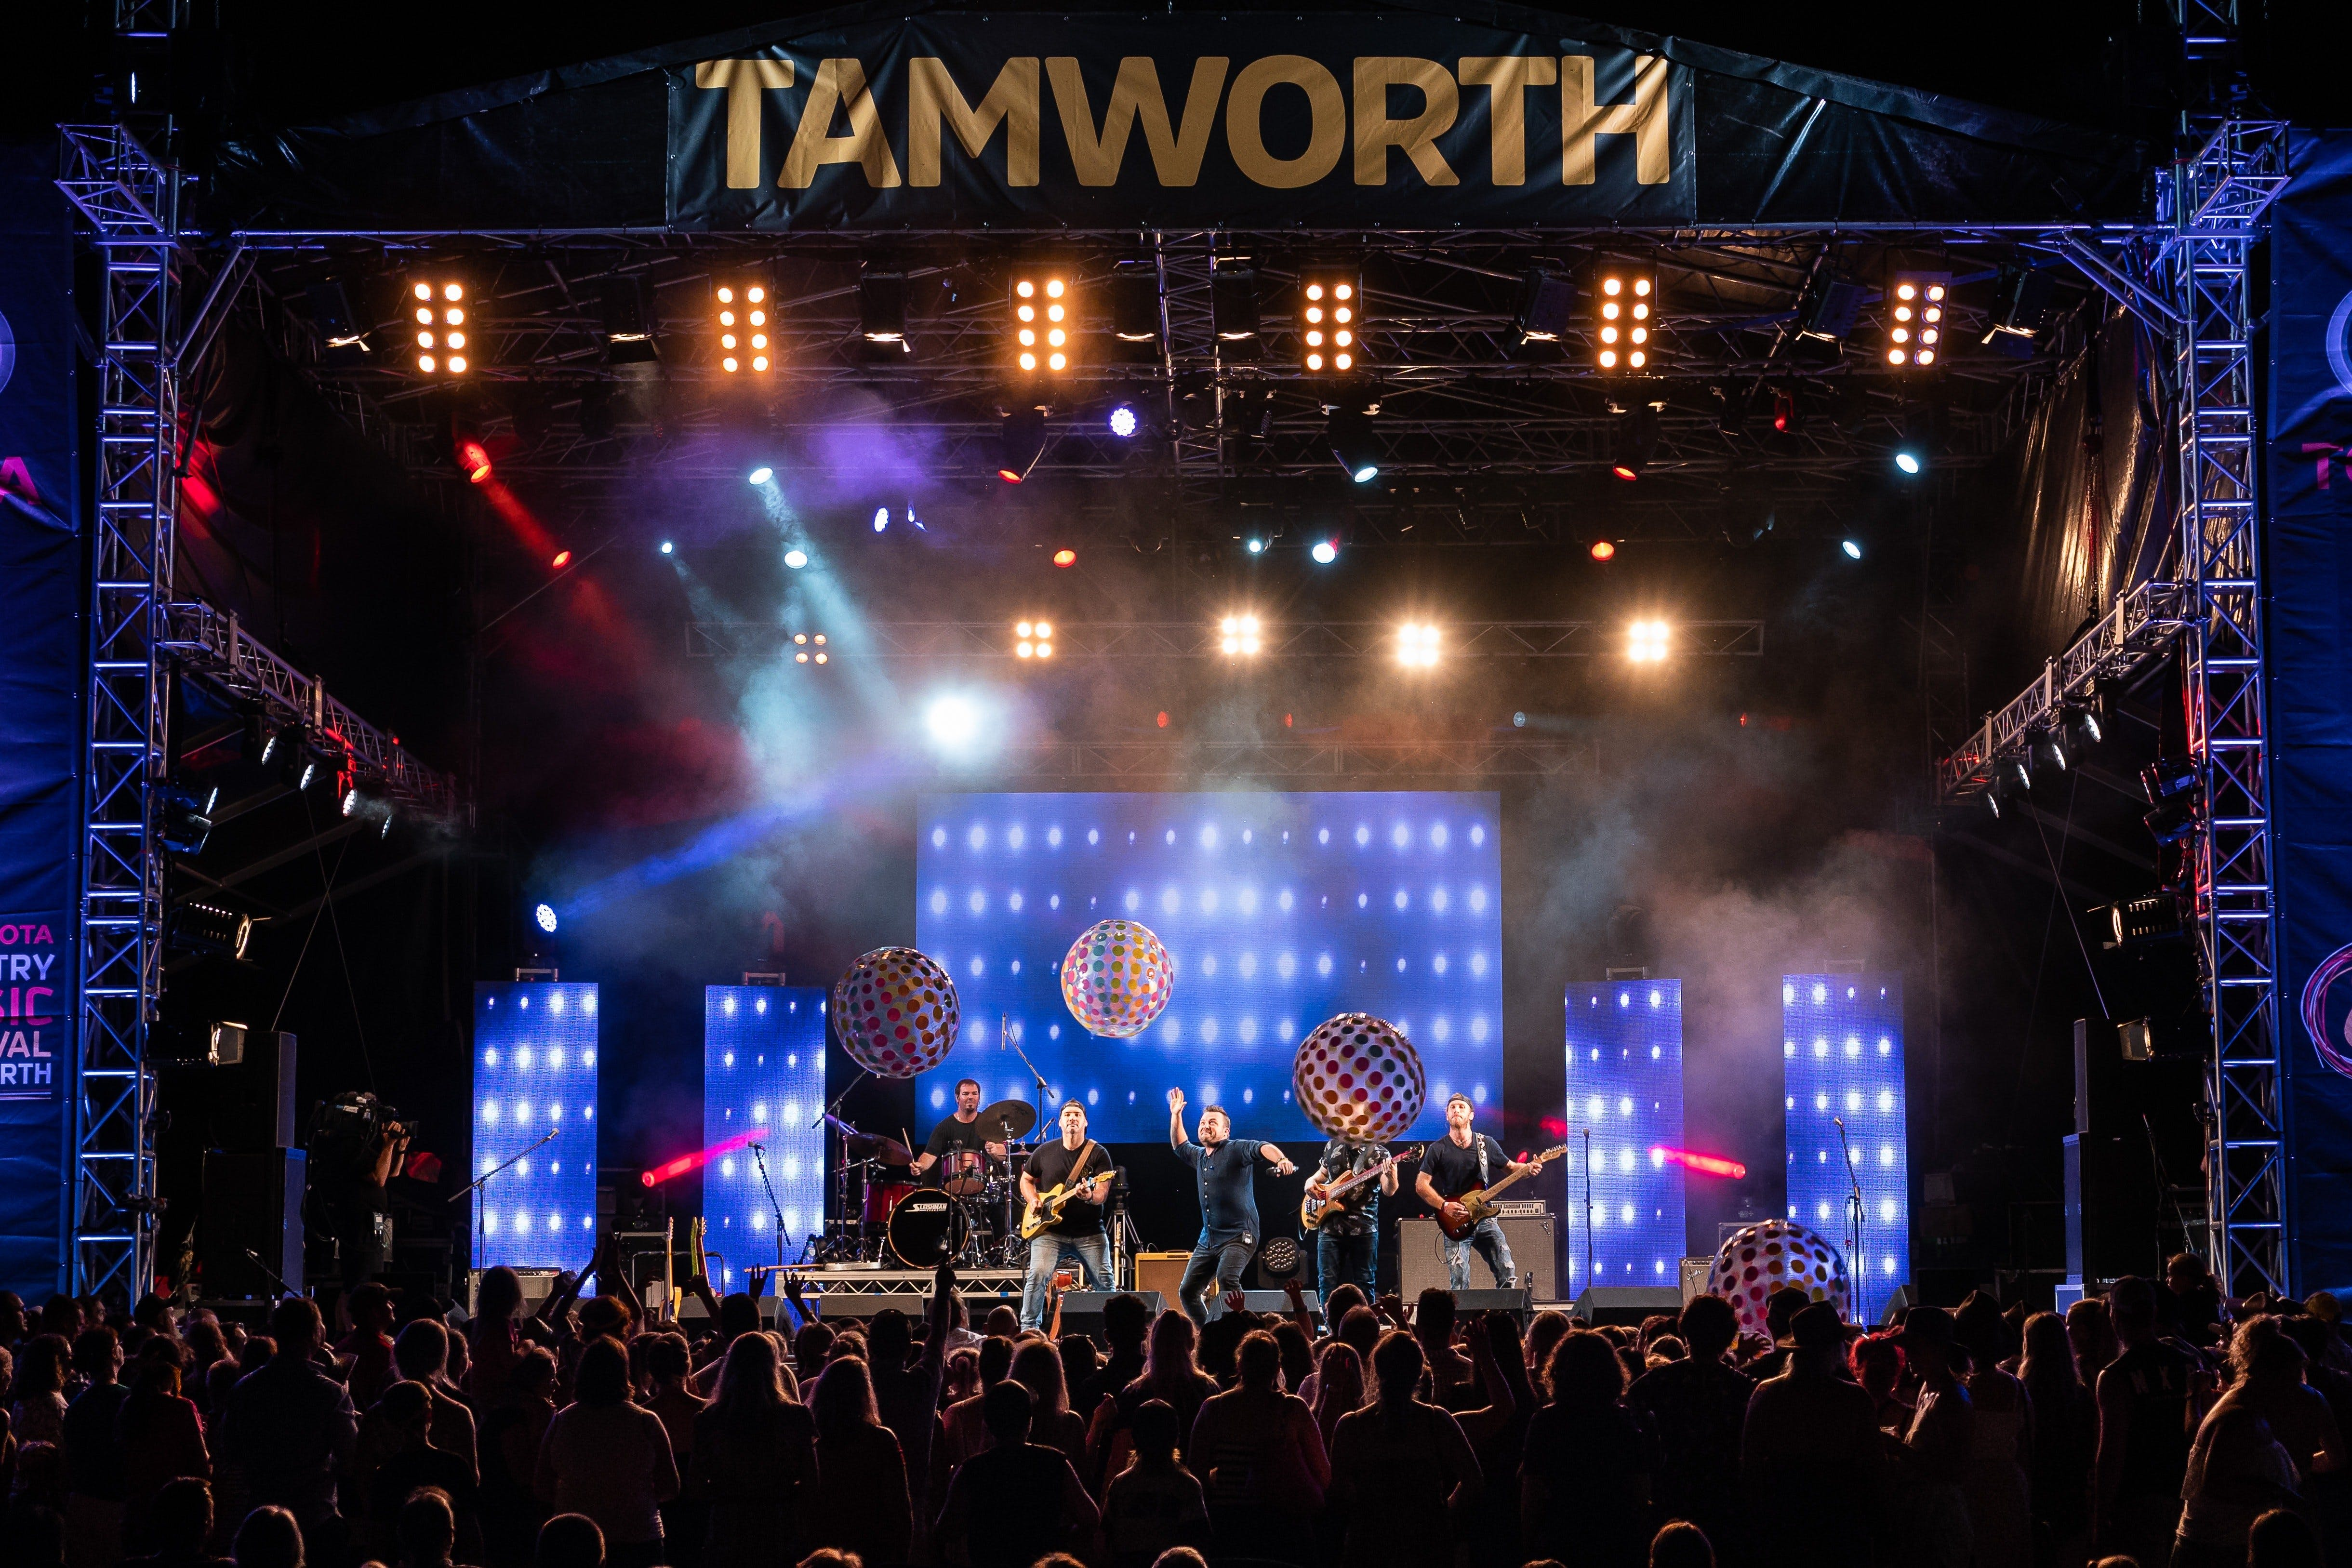 Toyota Country Music Festival Tamworth - New South Wales Tourism